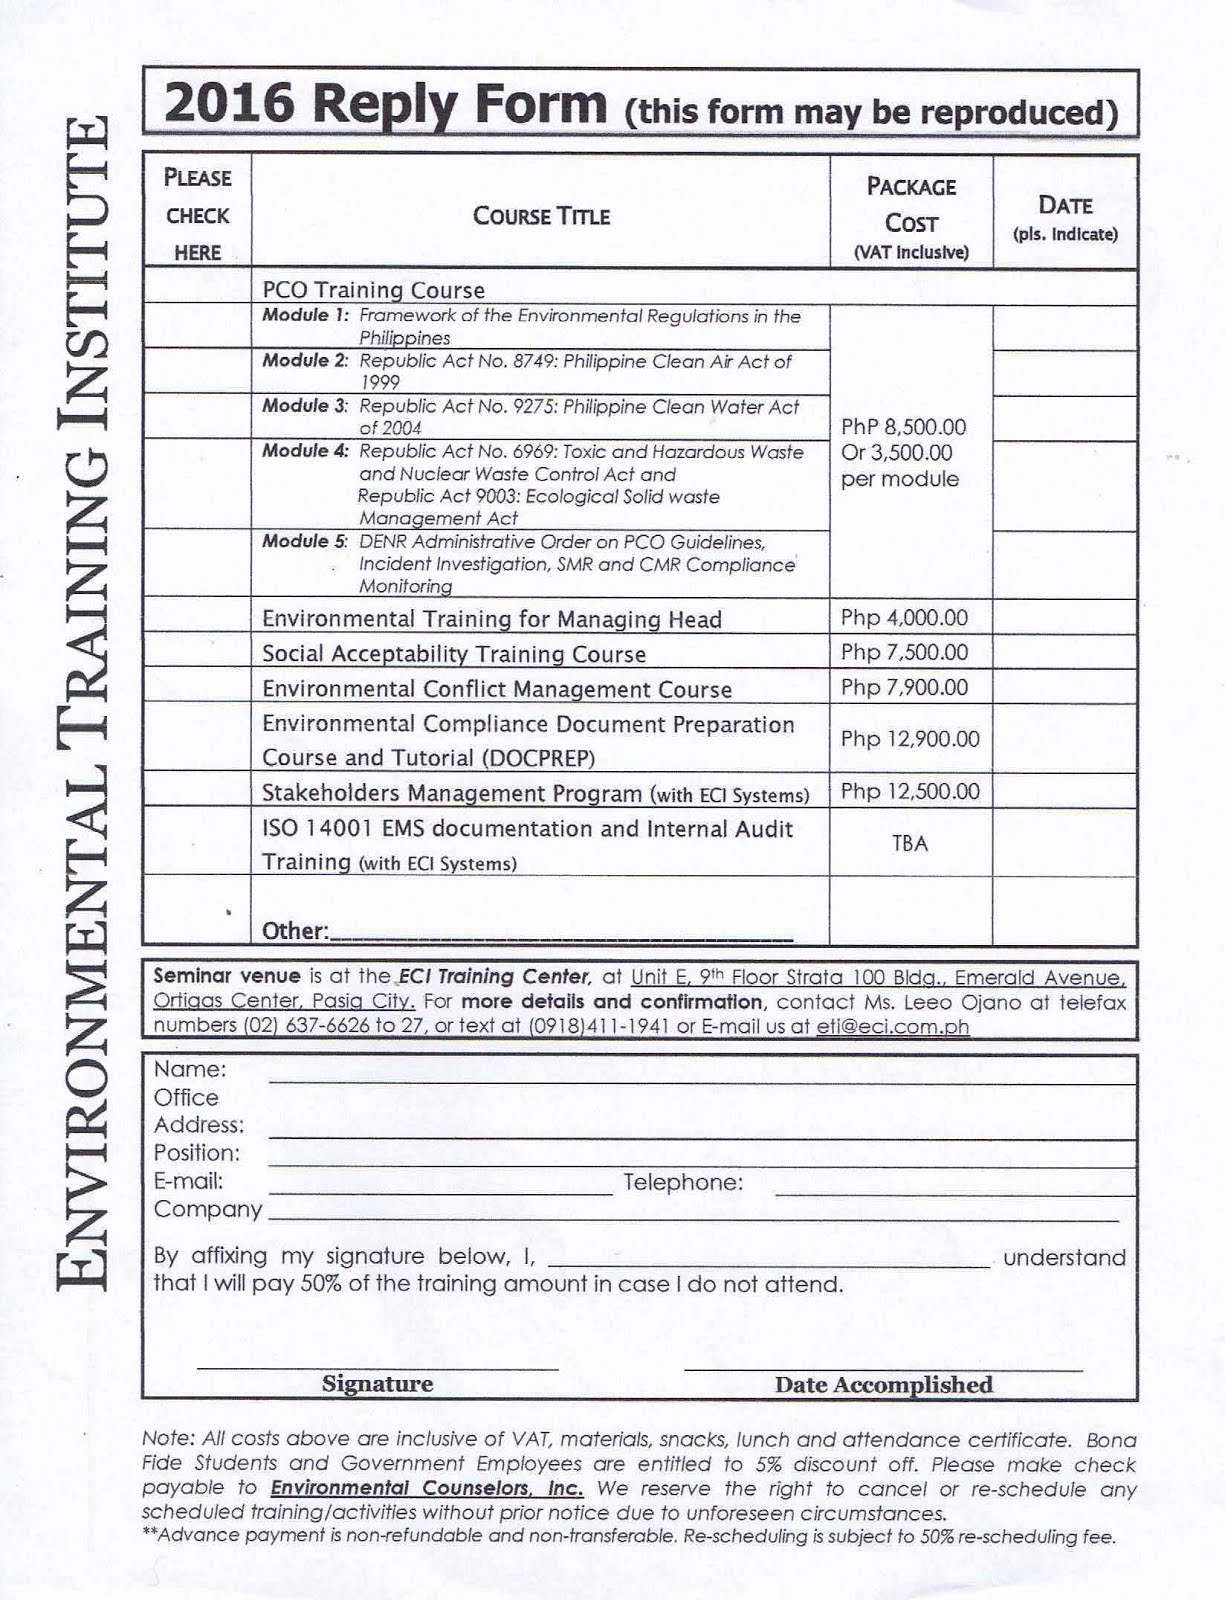 2016 Reply Form